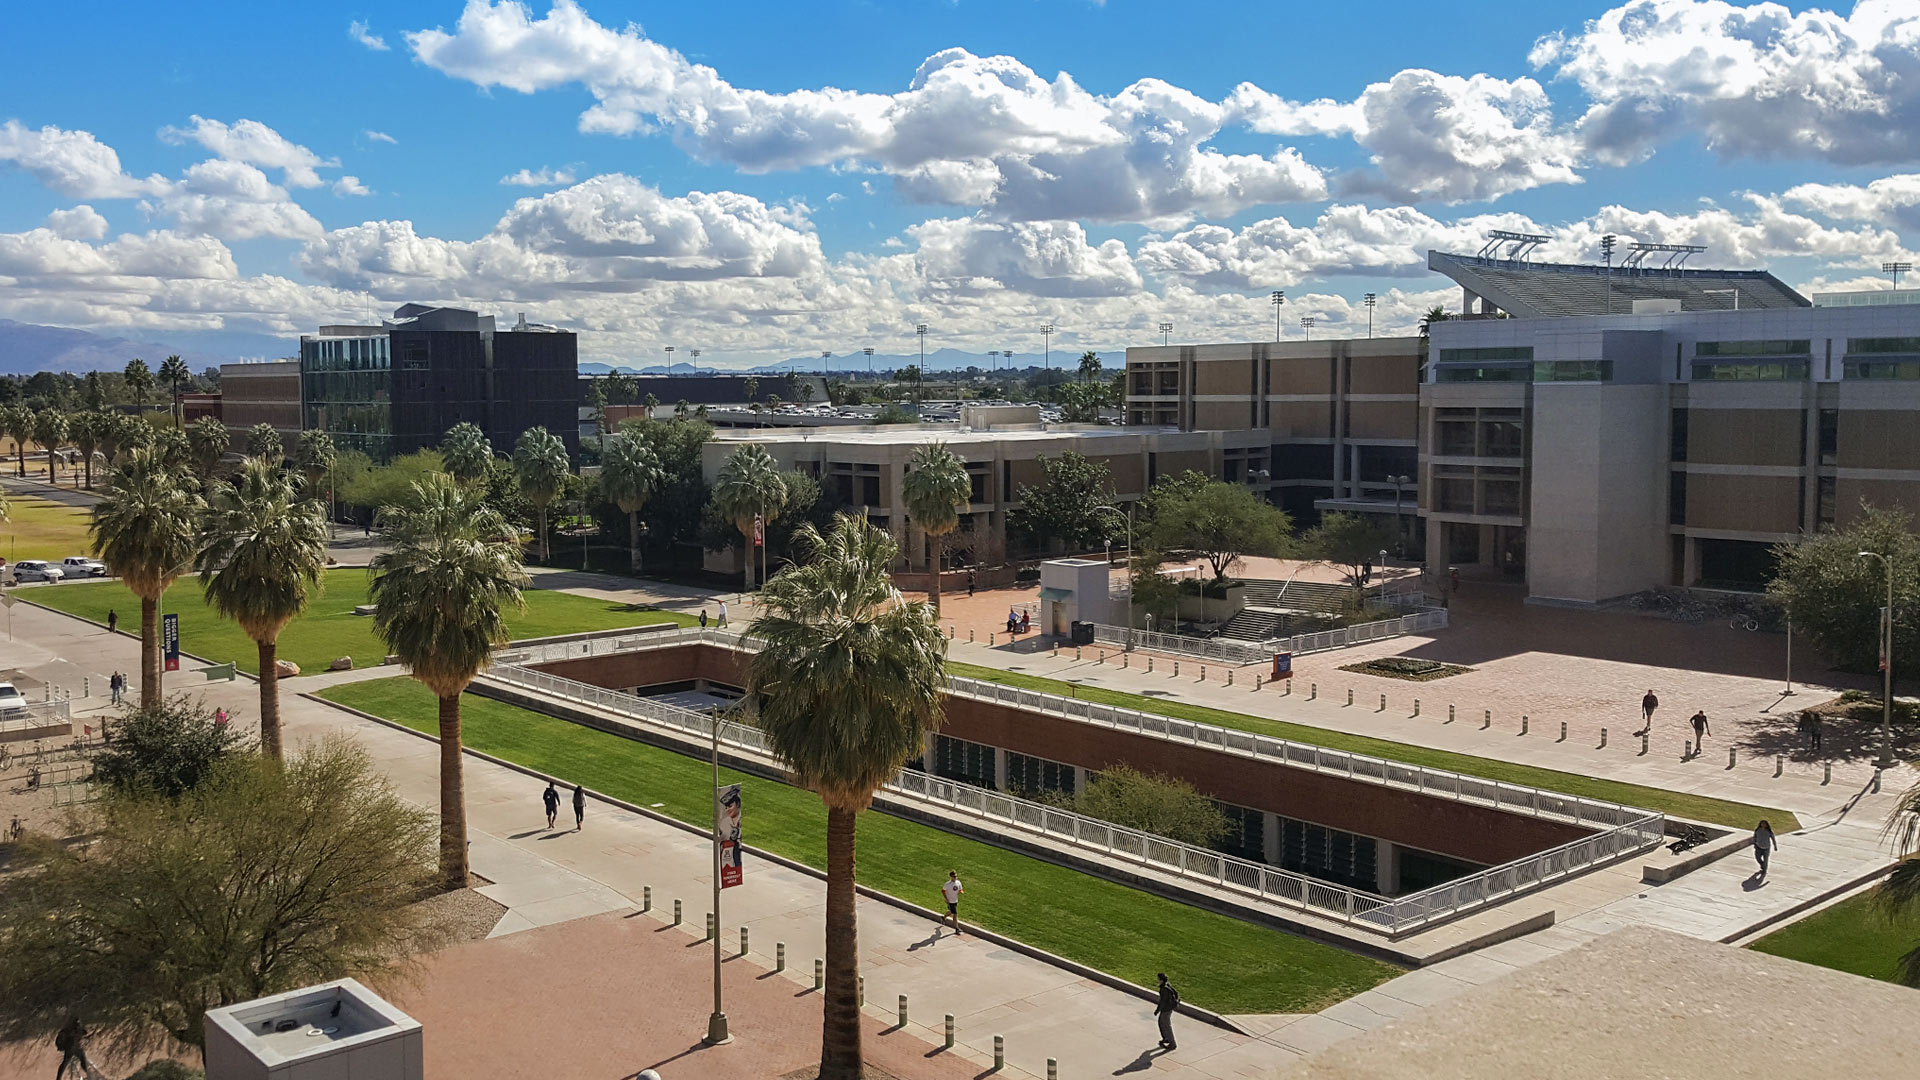 Looking down at the Integrated Learning Center on the campus of the University of Arizona.